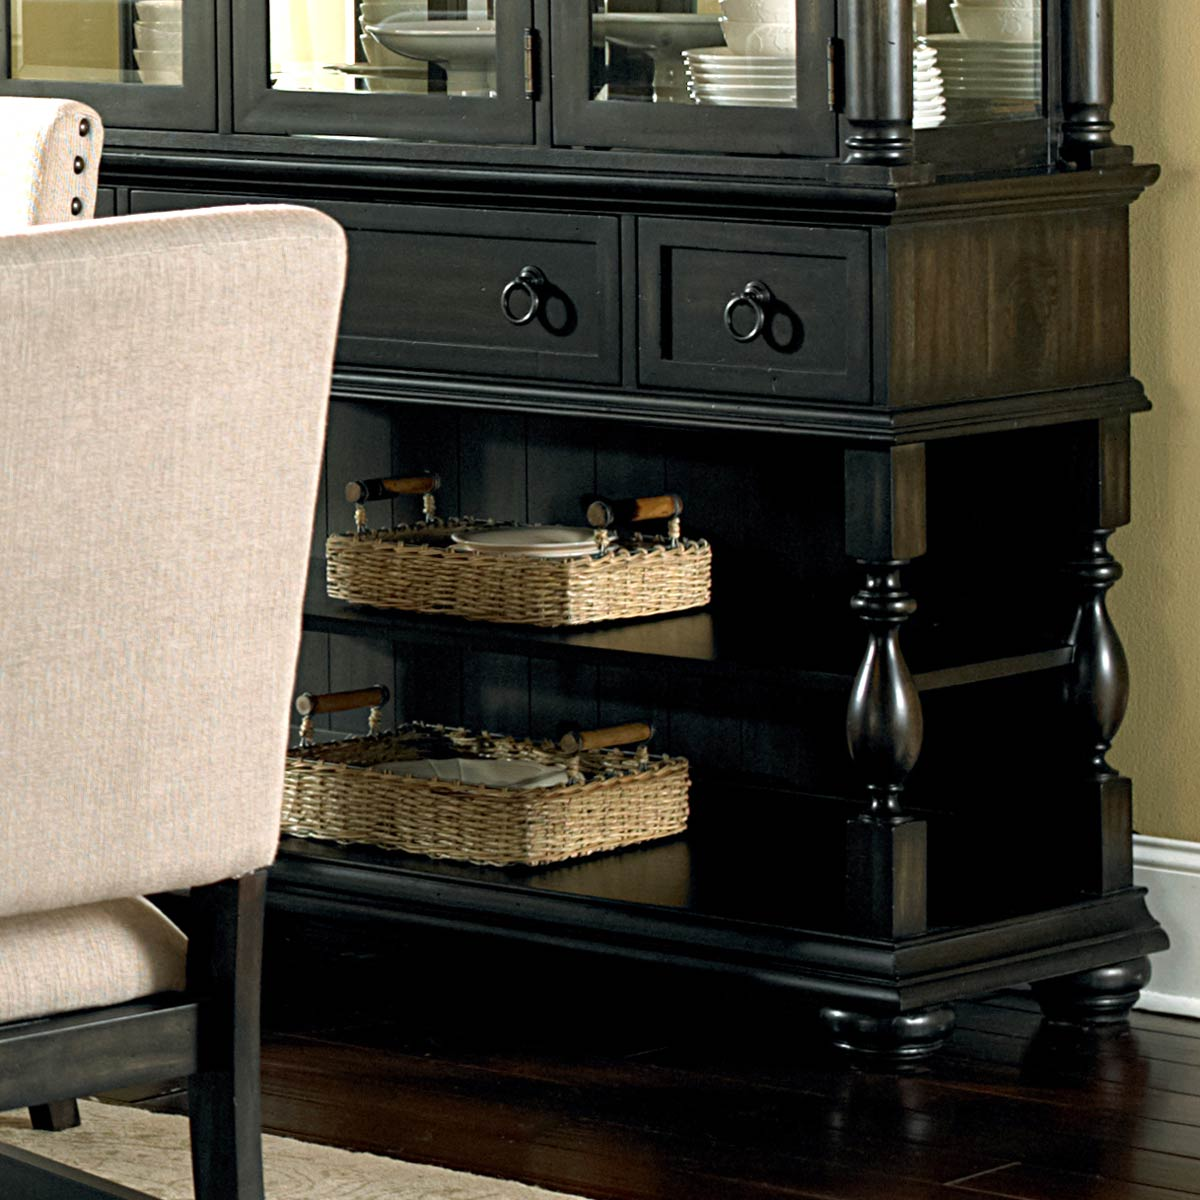 Leona Buffet Table - 3 Drawers, 2 Shelves, Dark Finish - SSC-LY200B